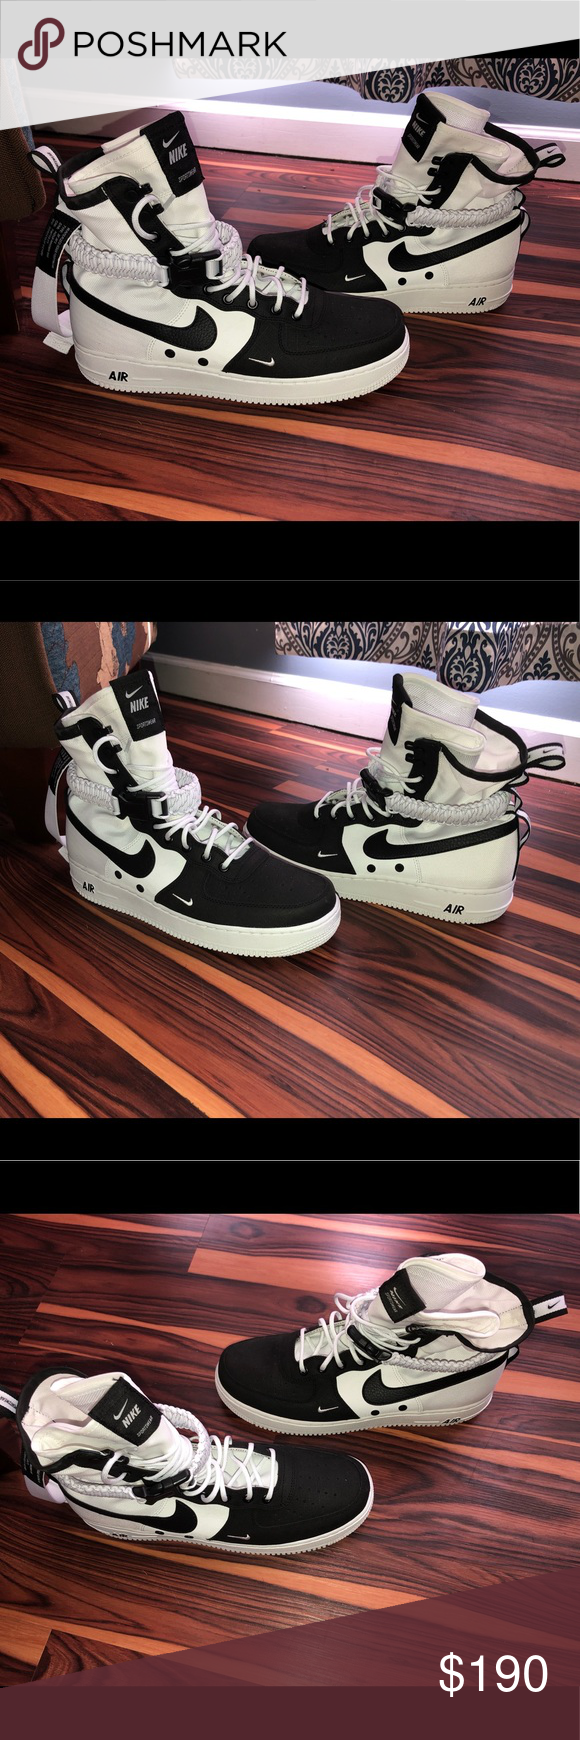 SF Air Force 1 High Panda—new in box These shoes are nice